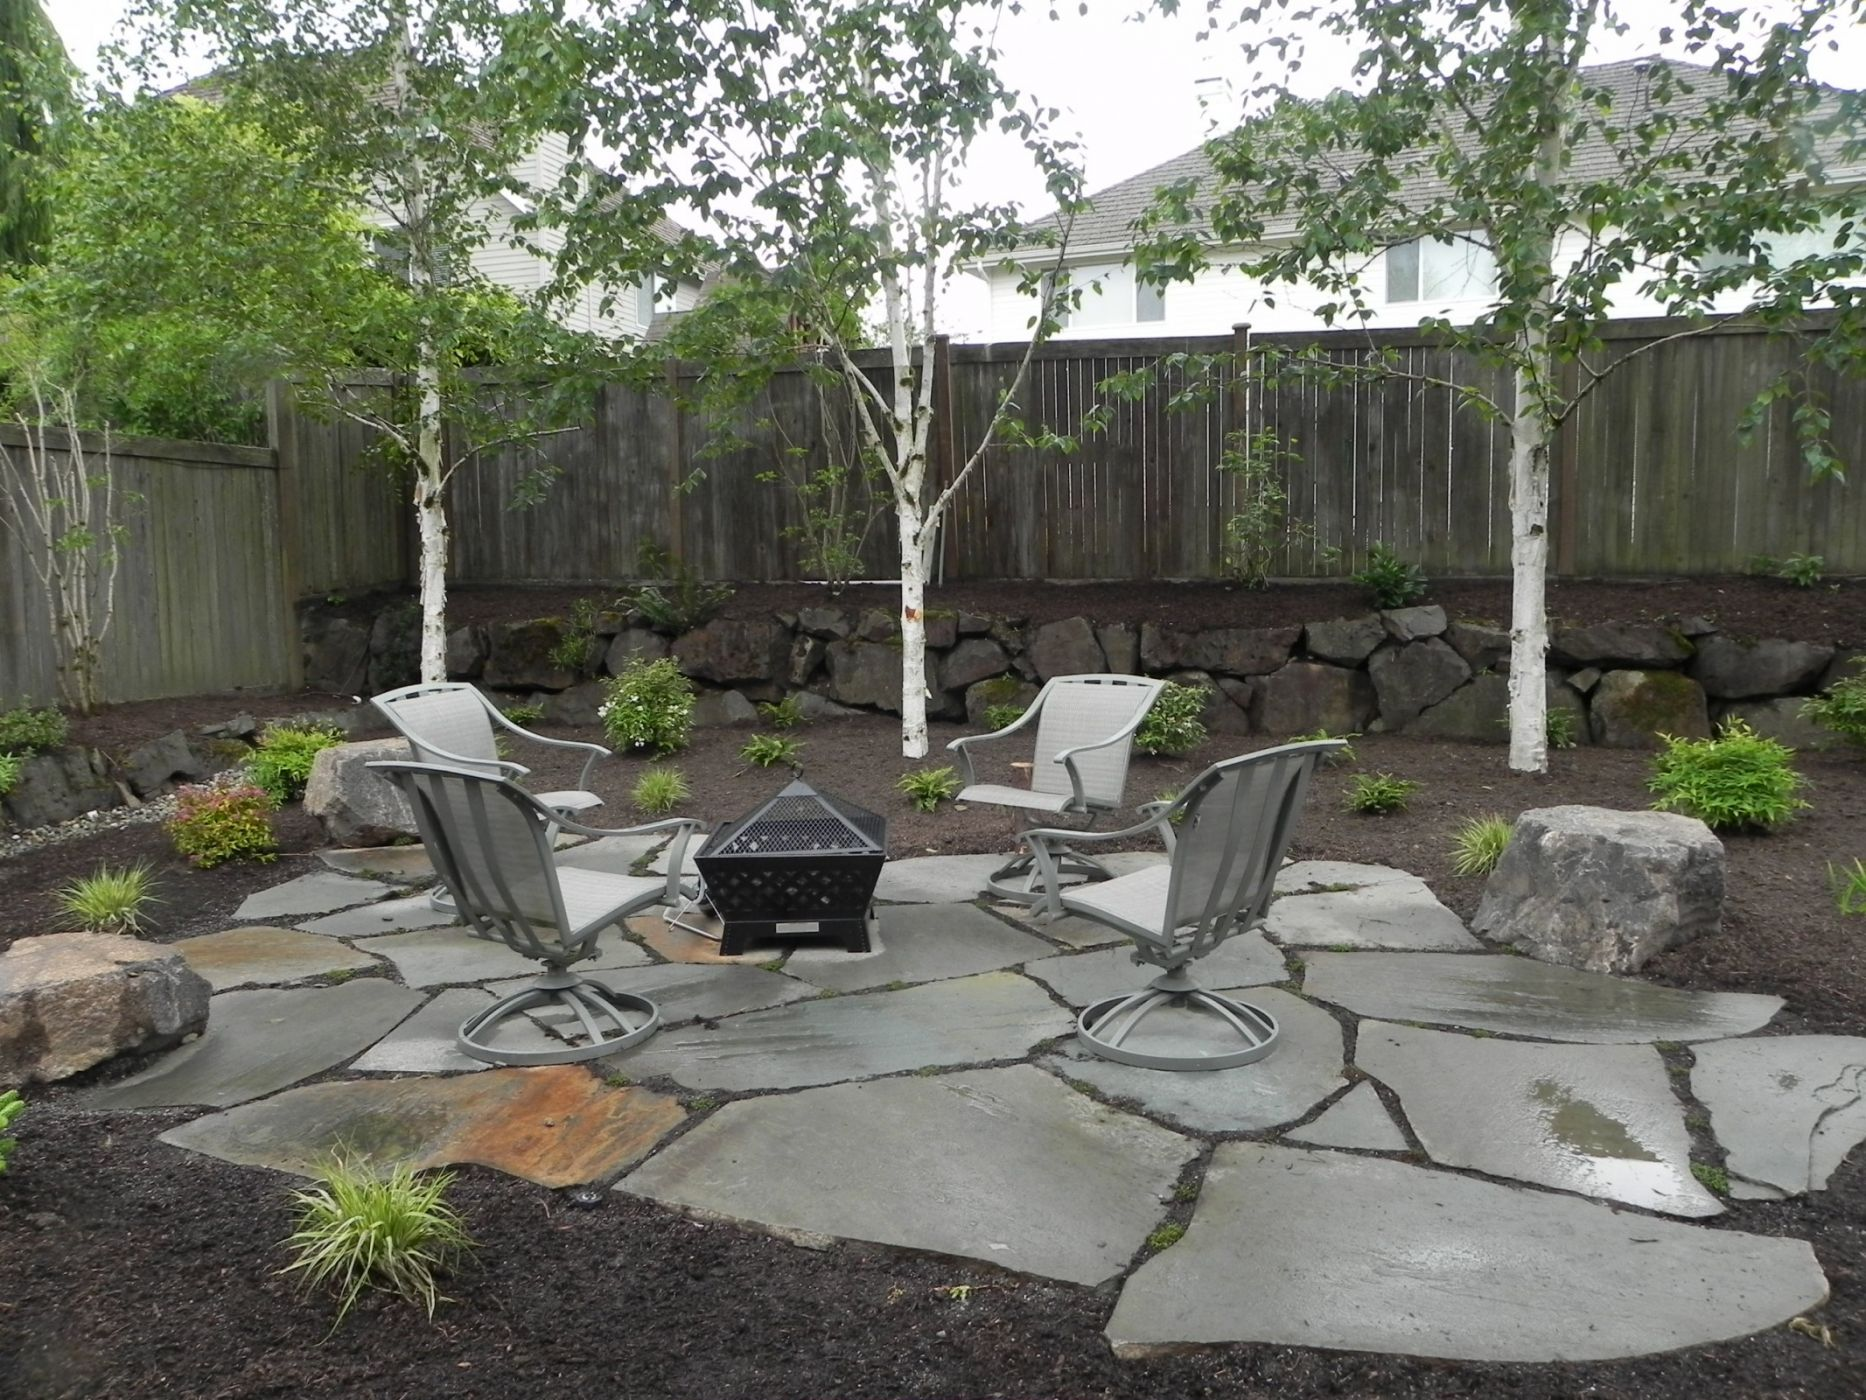 Snohomish backyard firepit sublime garden design for Fire pit ideas outdoor living